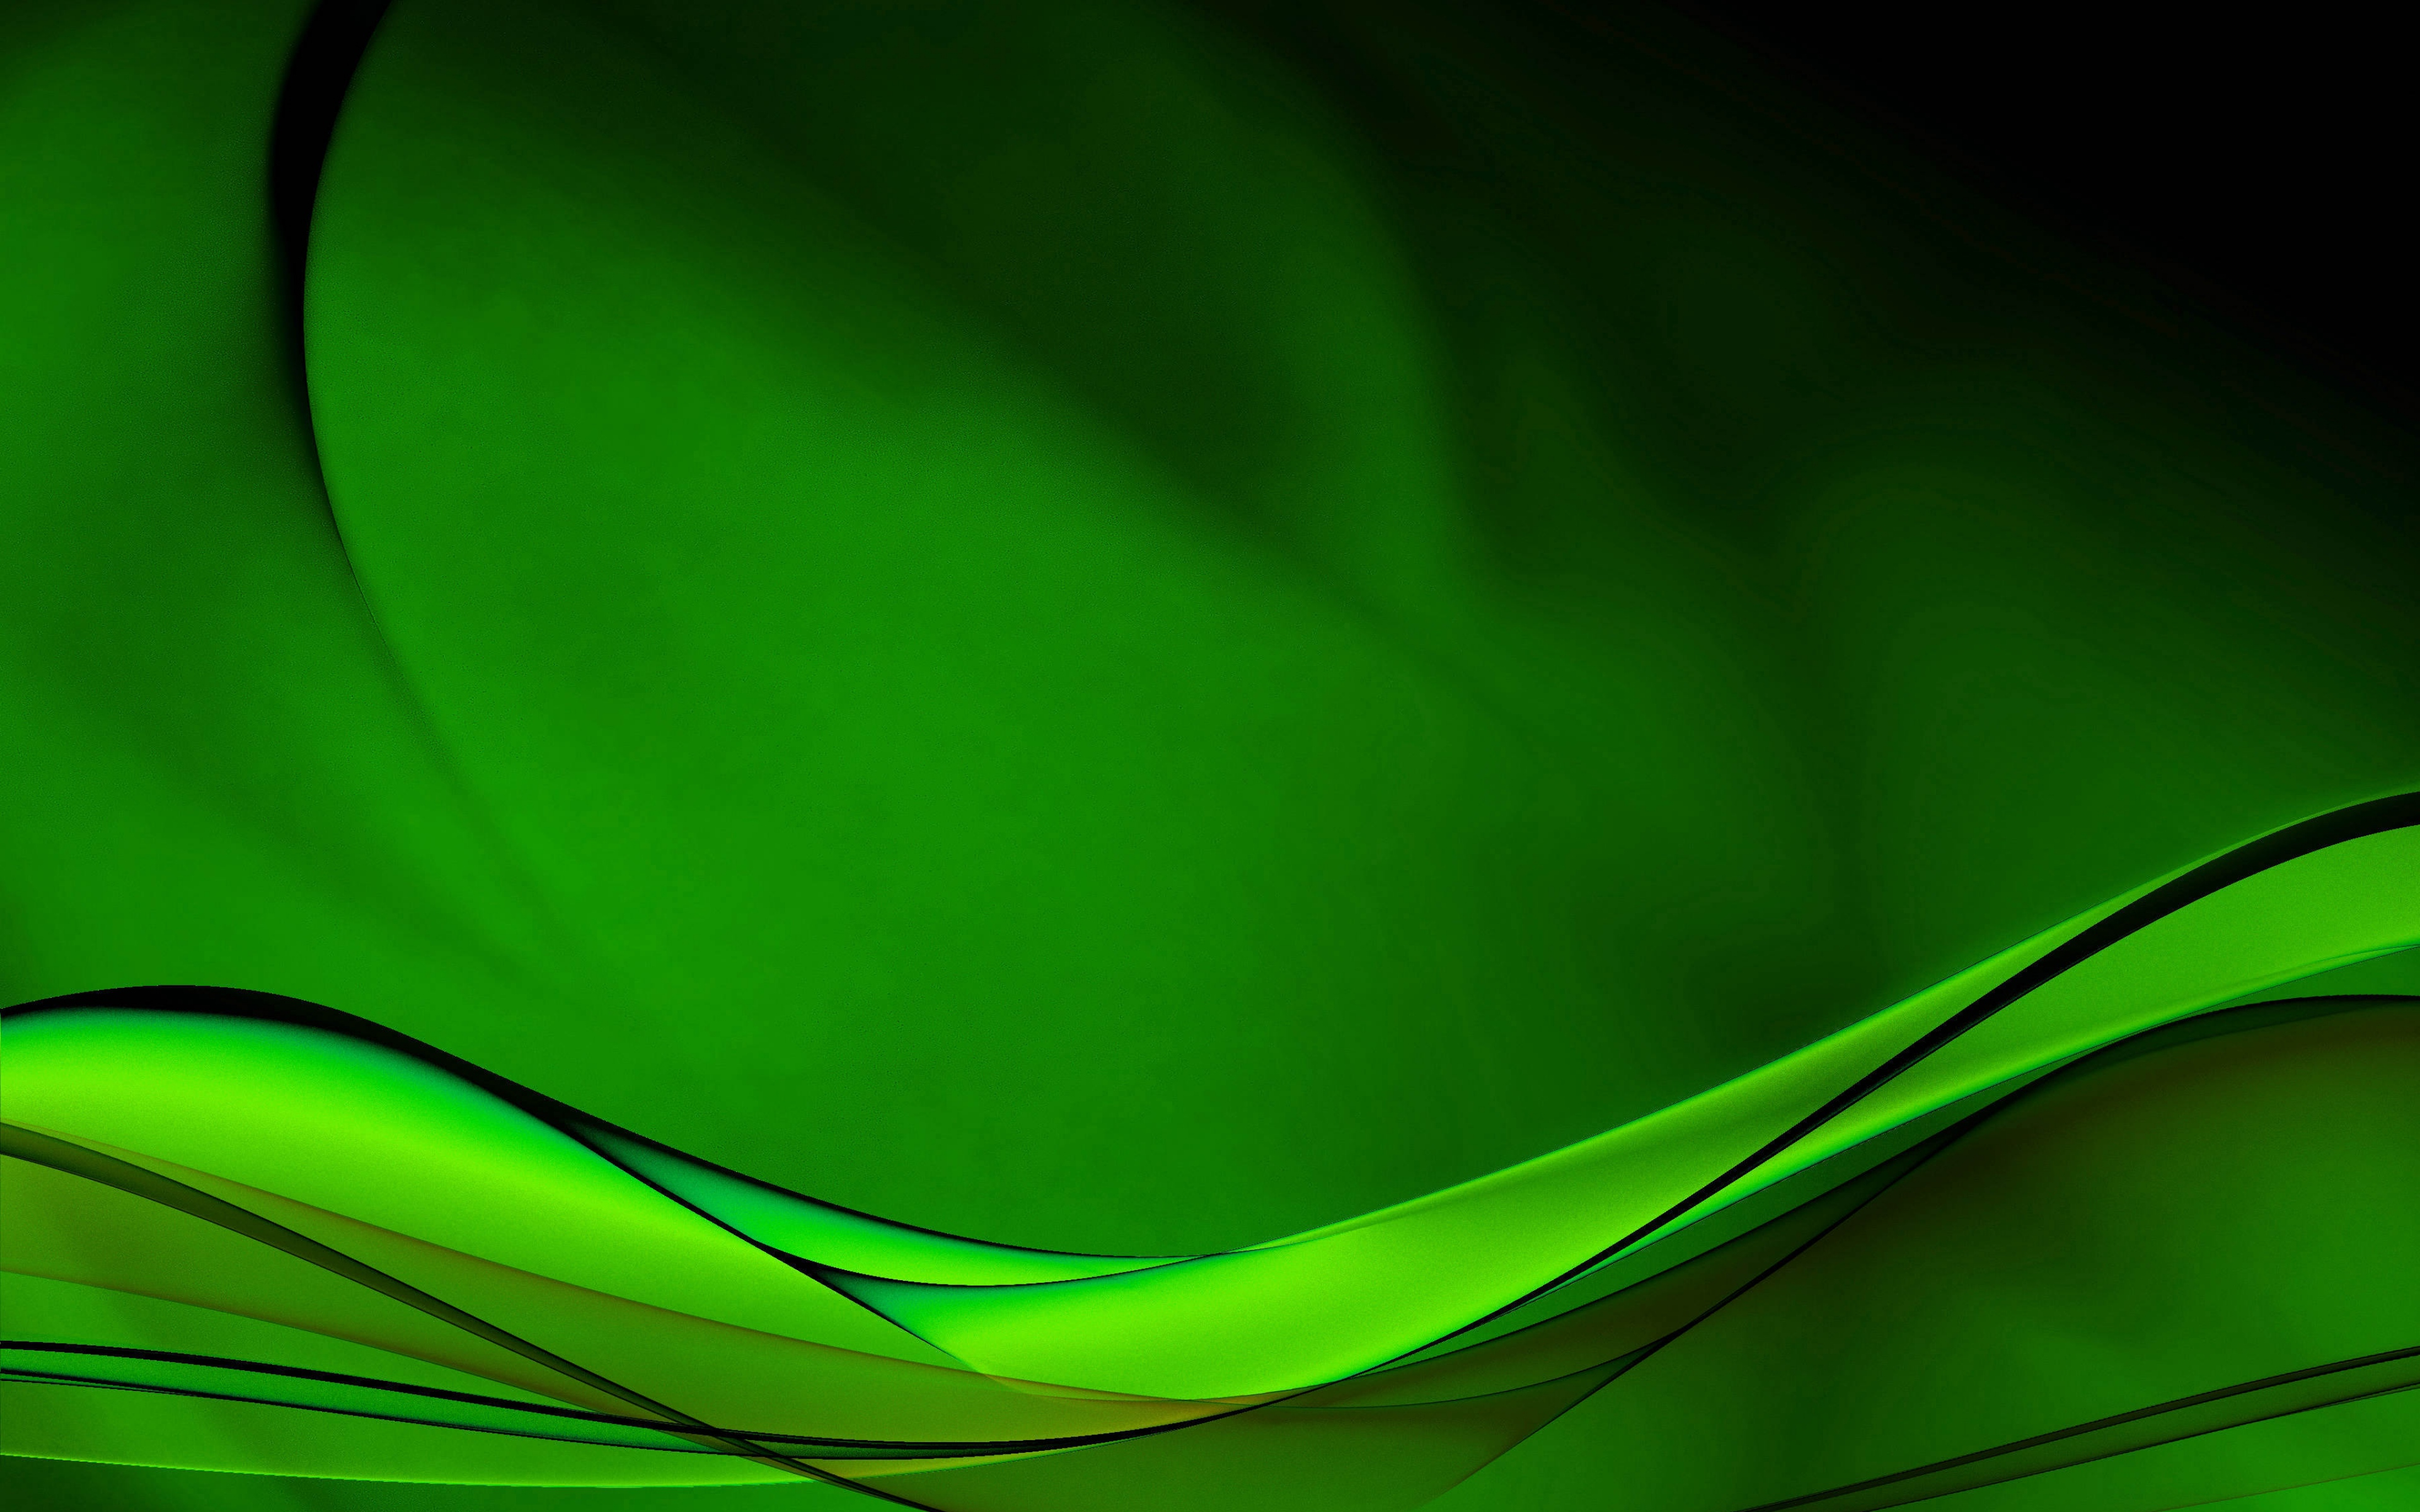 Free Download Abstract Background Green Lines Wallpaper